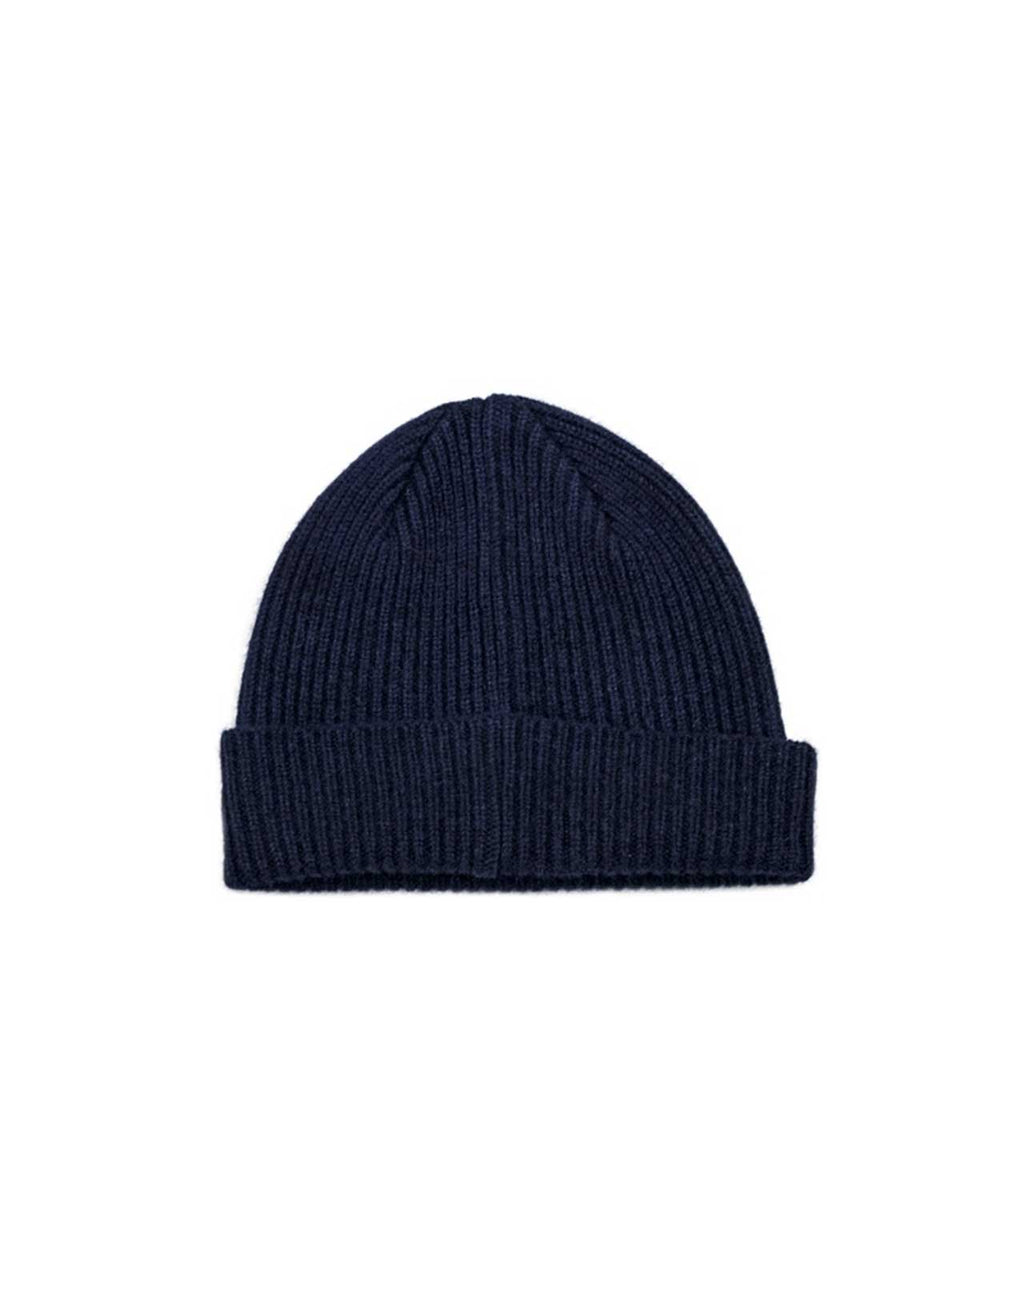 Bonnet Barra Robert Mackie couleur Navy